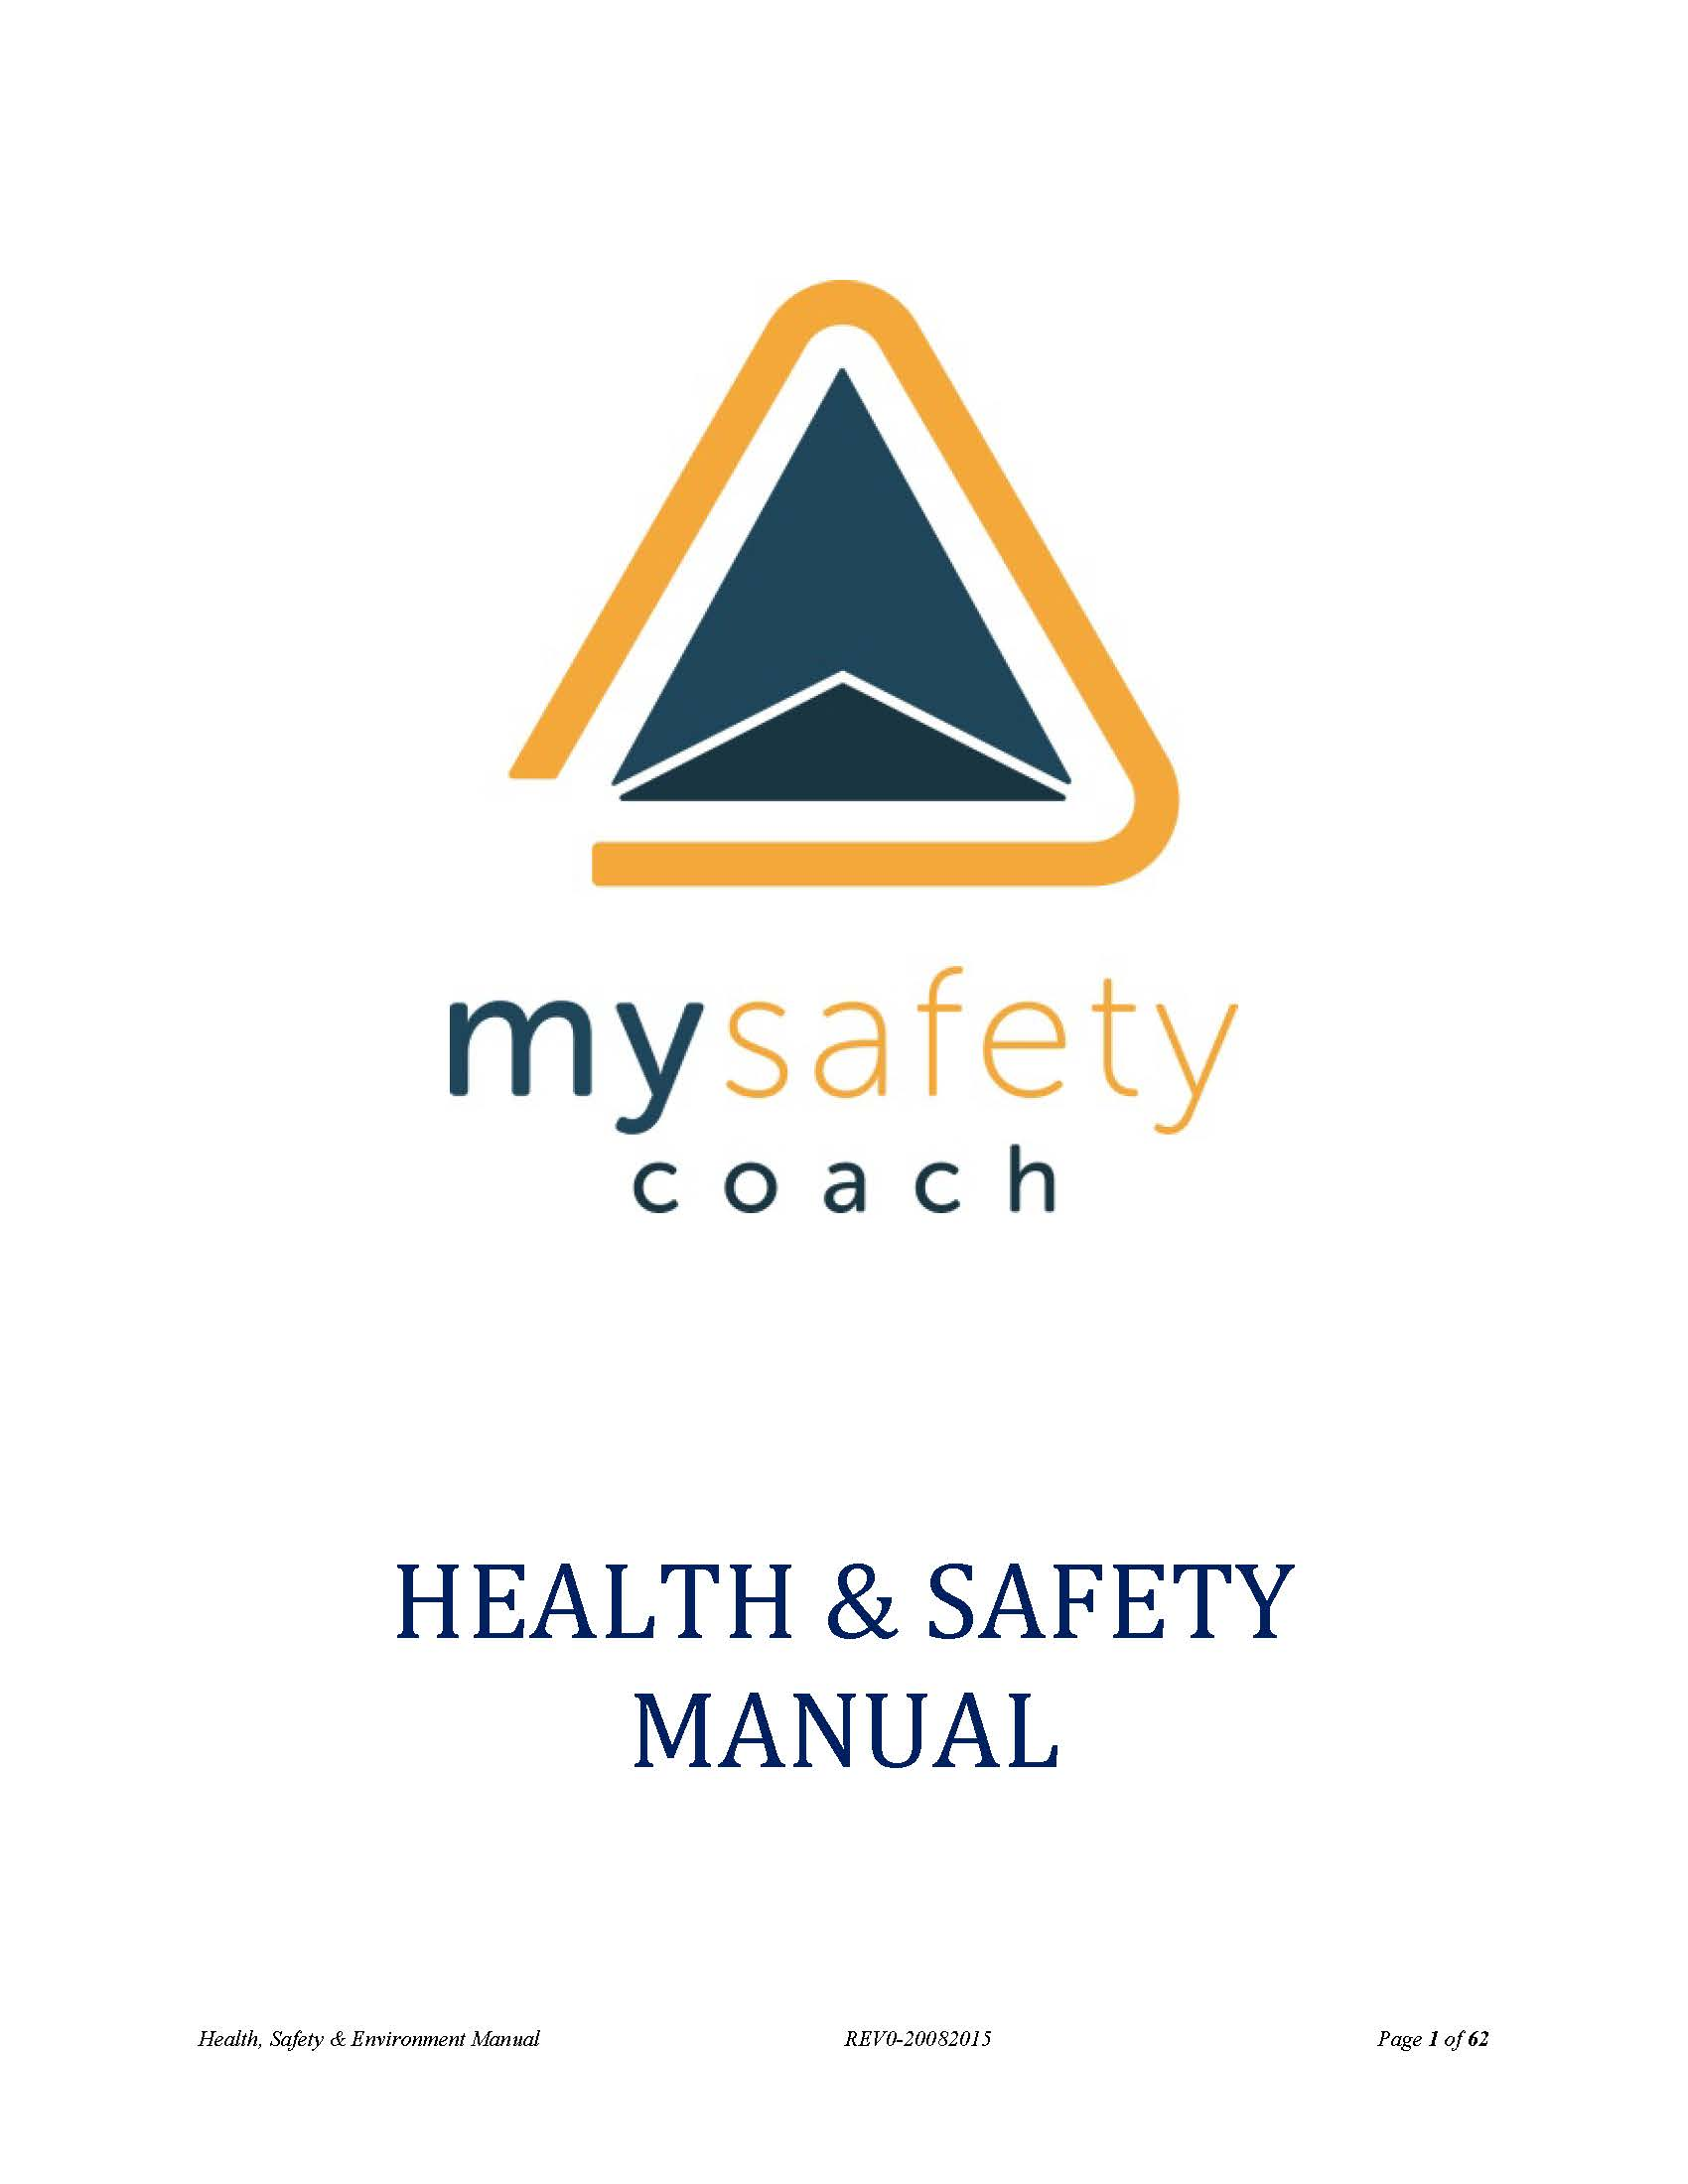 environment health and safety manual for 253 quality, environment, health & safety manual this quality, environment, health & safety manual has been established and maintained that includes the following.